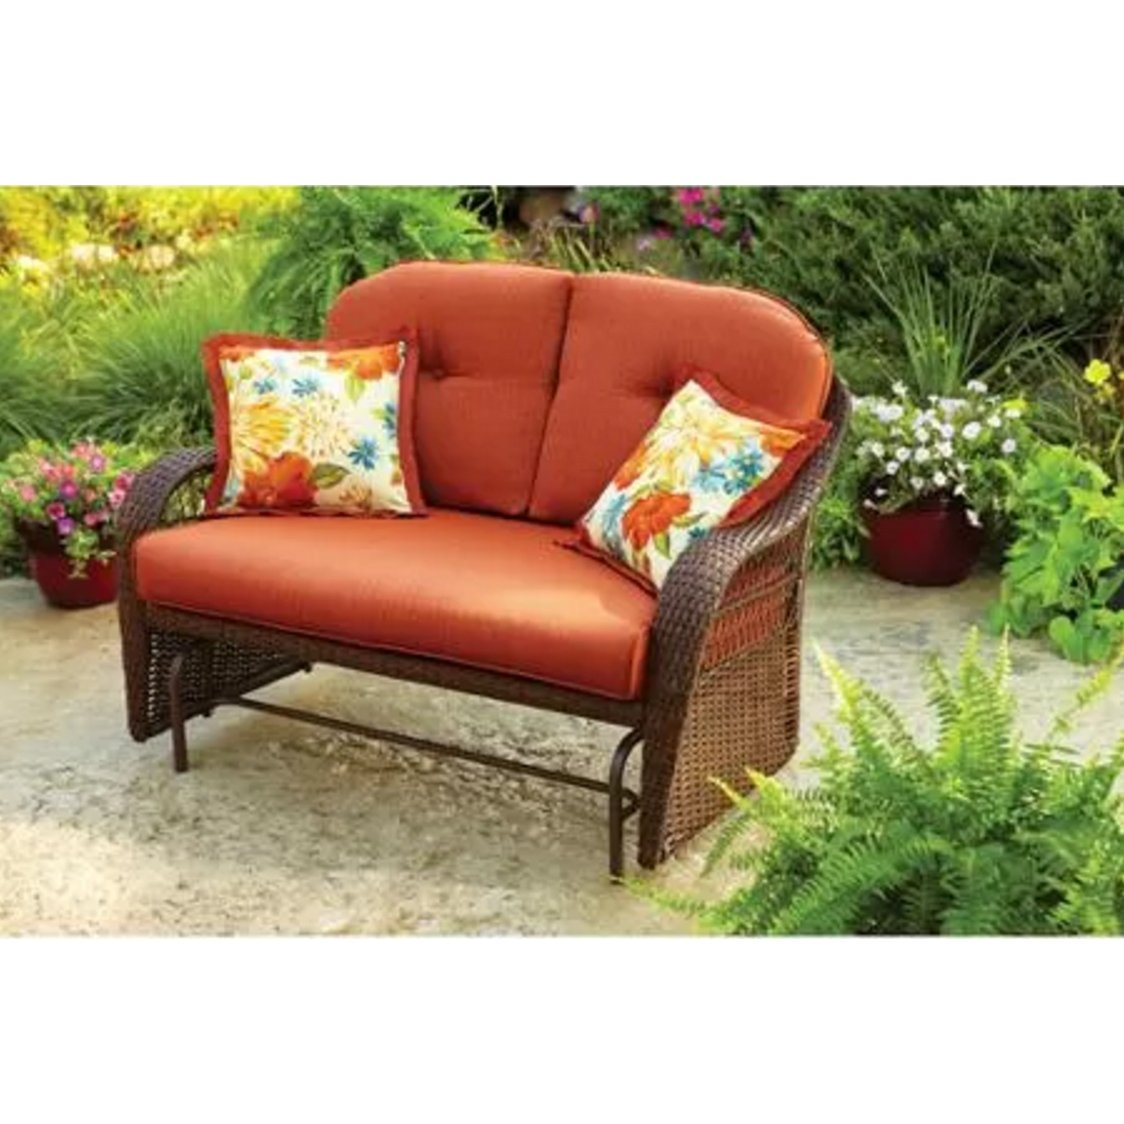 Amazon.com: Outdoor Patio Glider By Better Homes And Gardens: Garden U0026  Outdoor